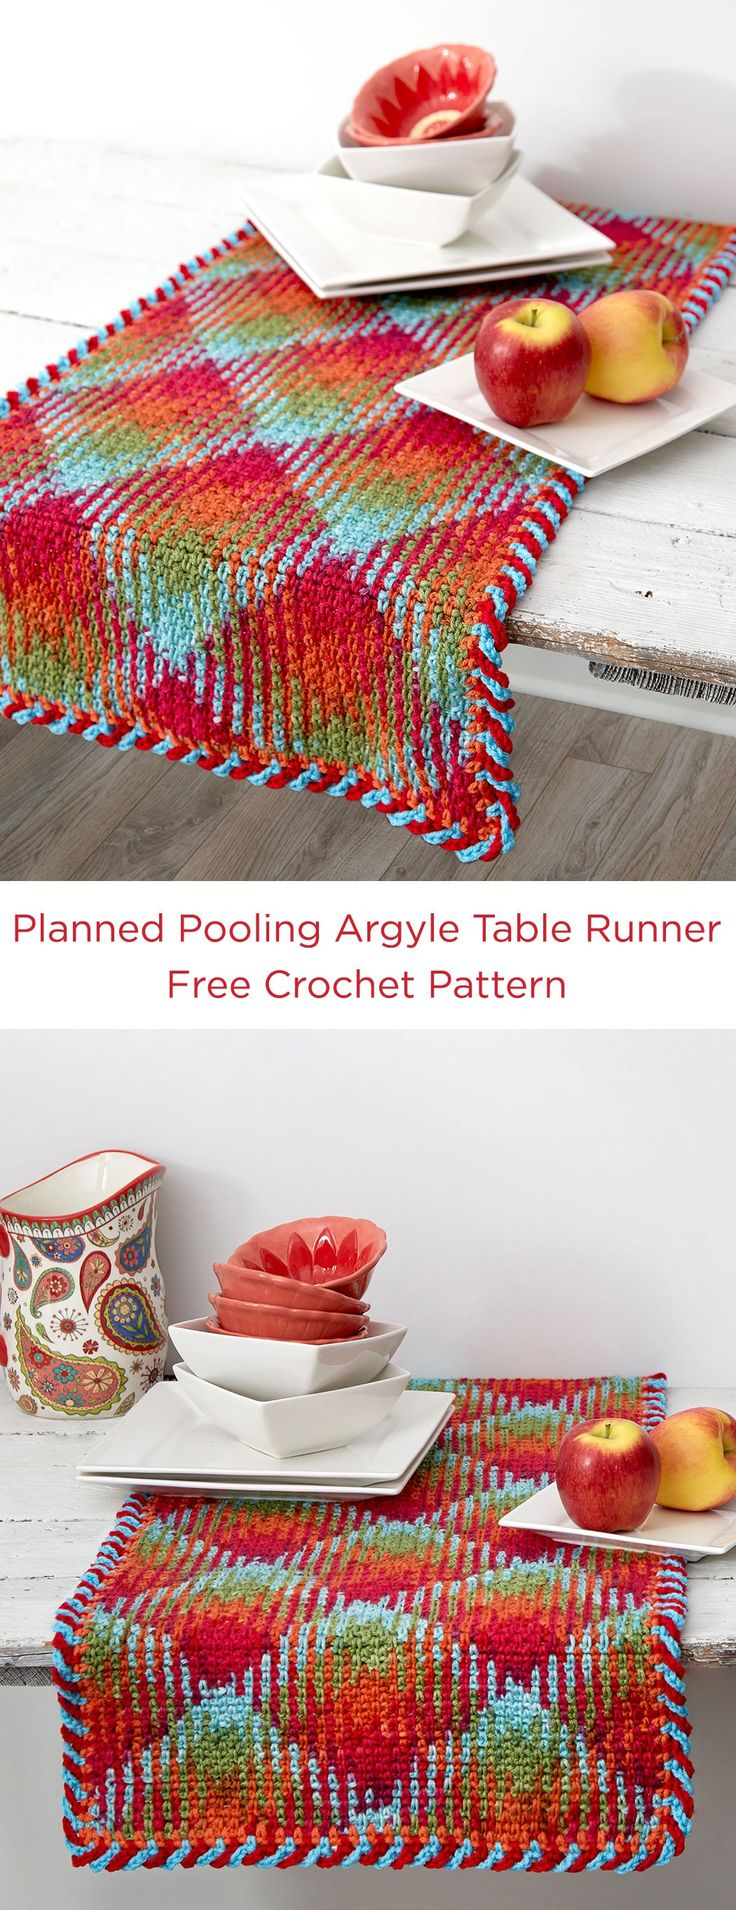 17 Best Images About Crochet Pooling Flashing On